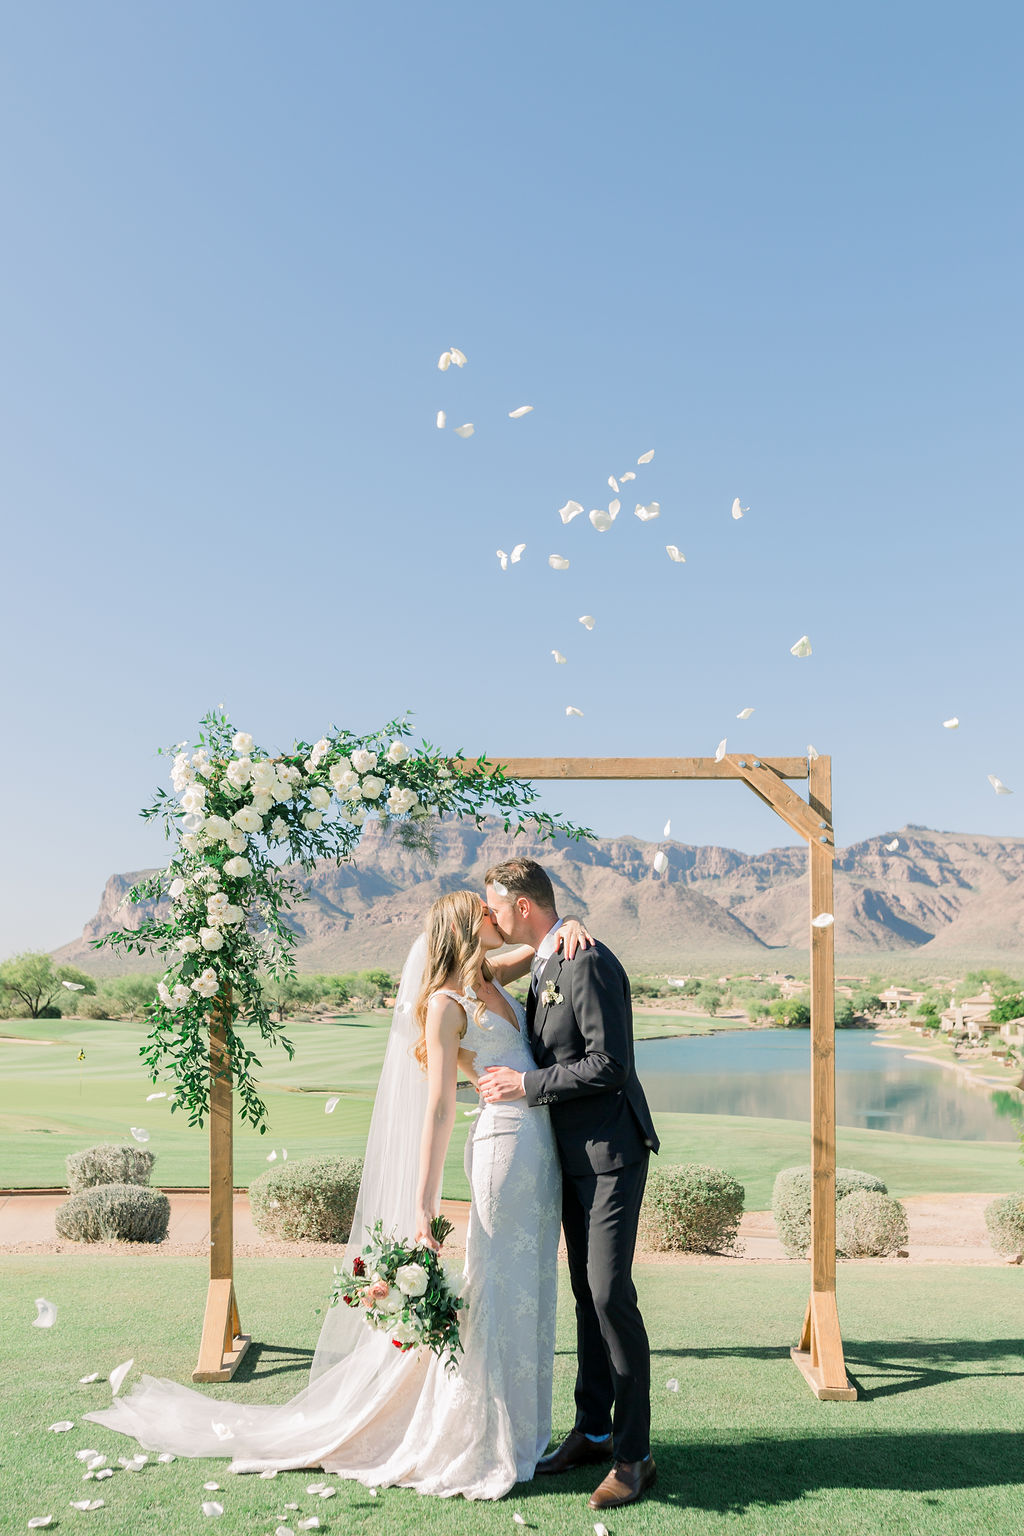 Superstition Mountain Destination Wedding - Arizona Wedding Florist - Phoenix, Scottsdale, Sedona - Simple Wedding Arch with White Roses and Greenery